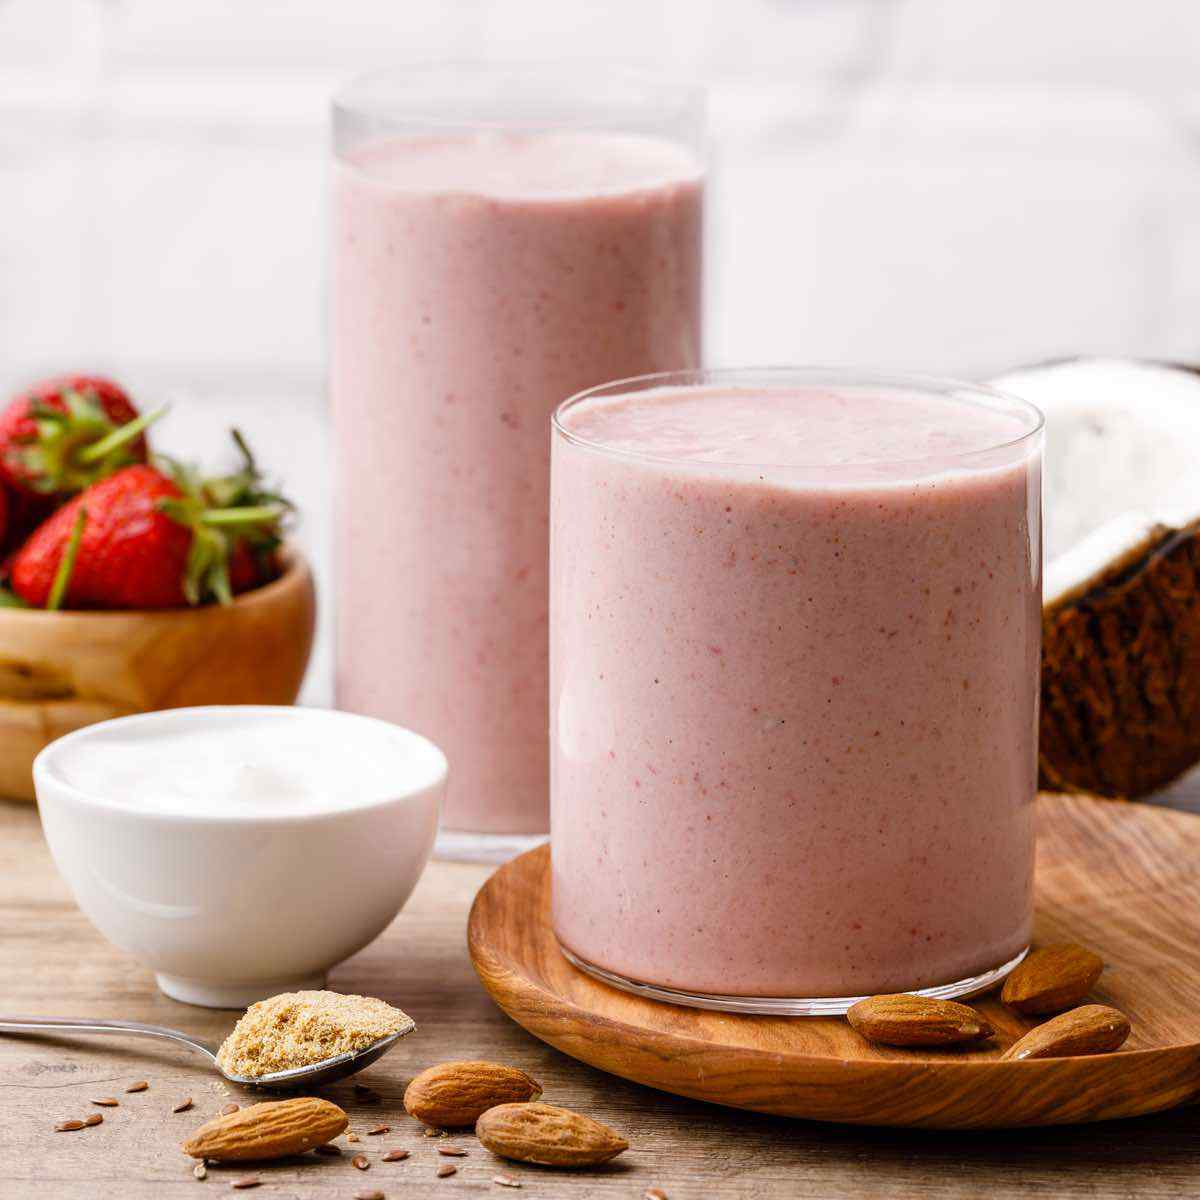 Greek Yogurt Strawberry Banana Smoothie For Weight Loss Blender Balance